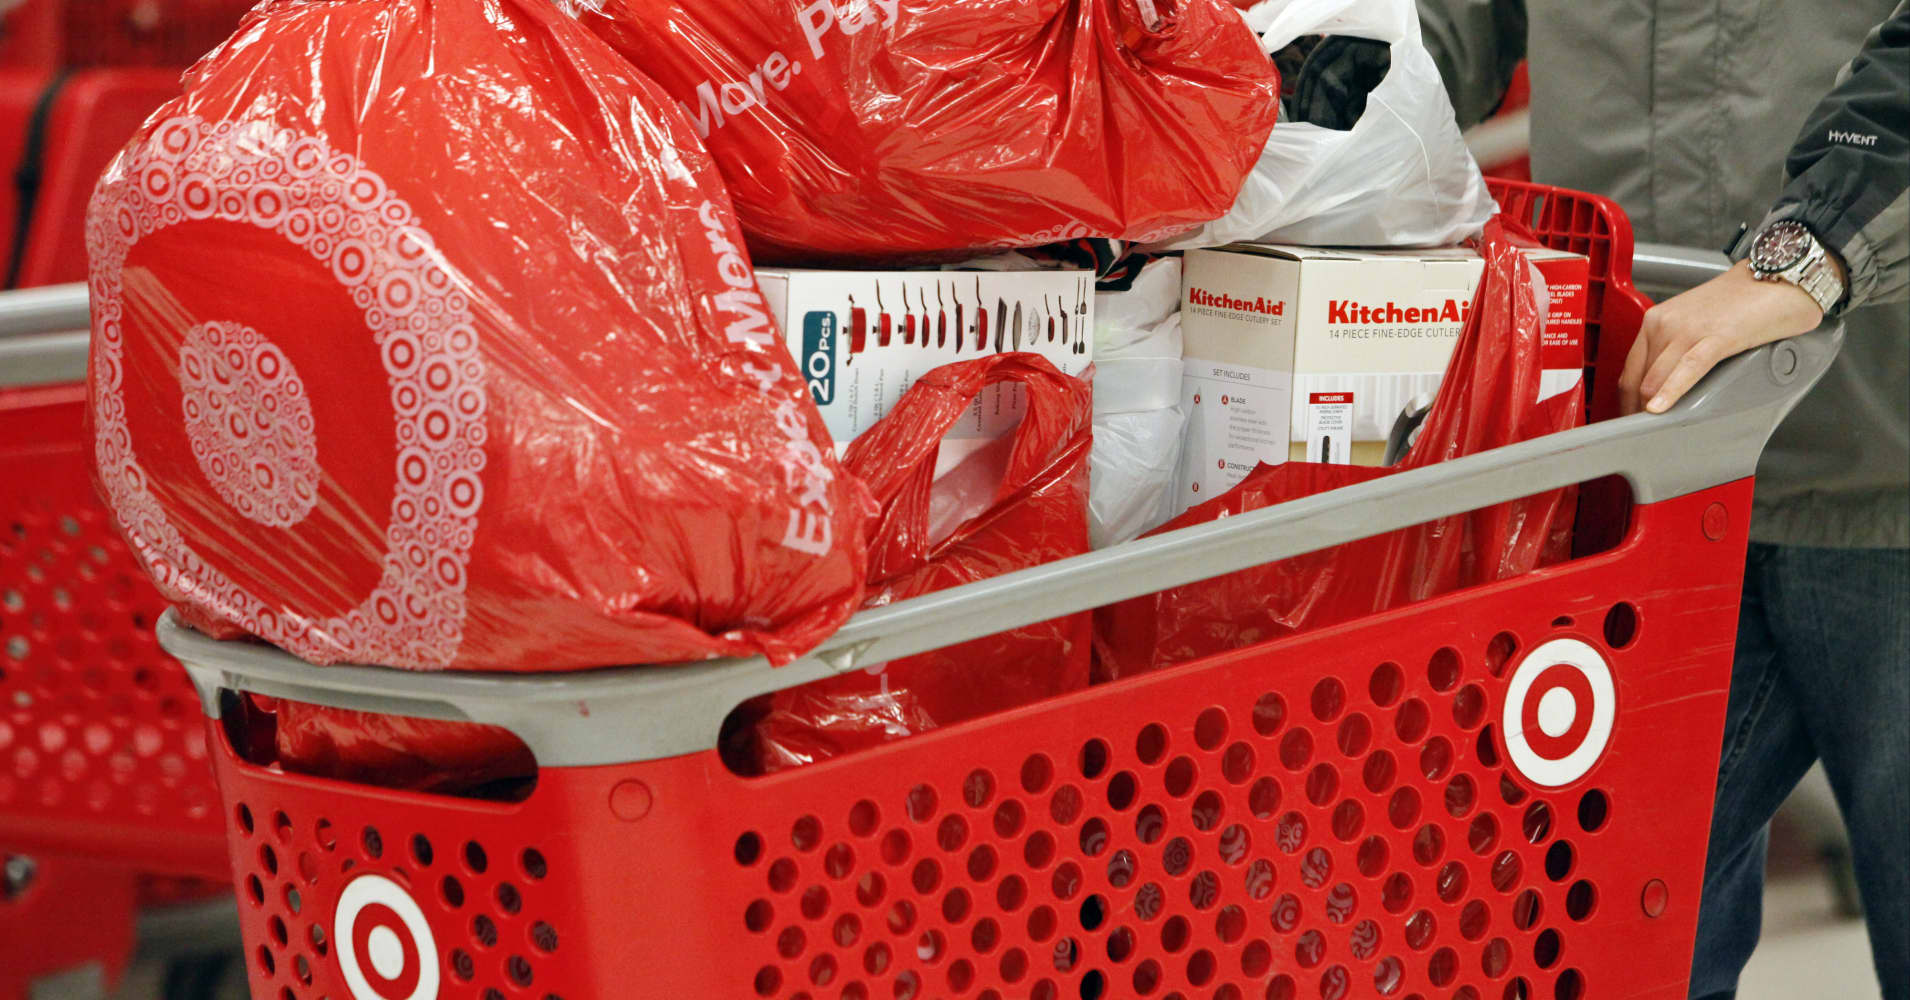 7 foods, household items and other essentials you should always buy at Target